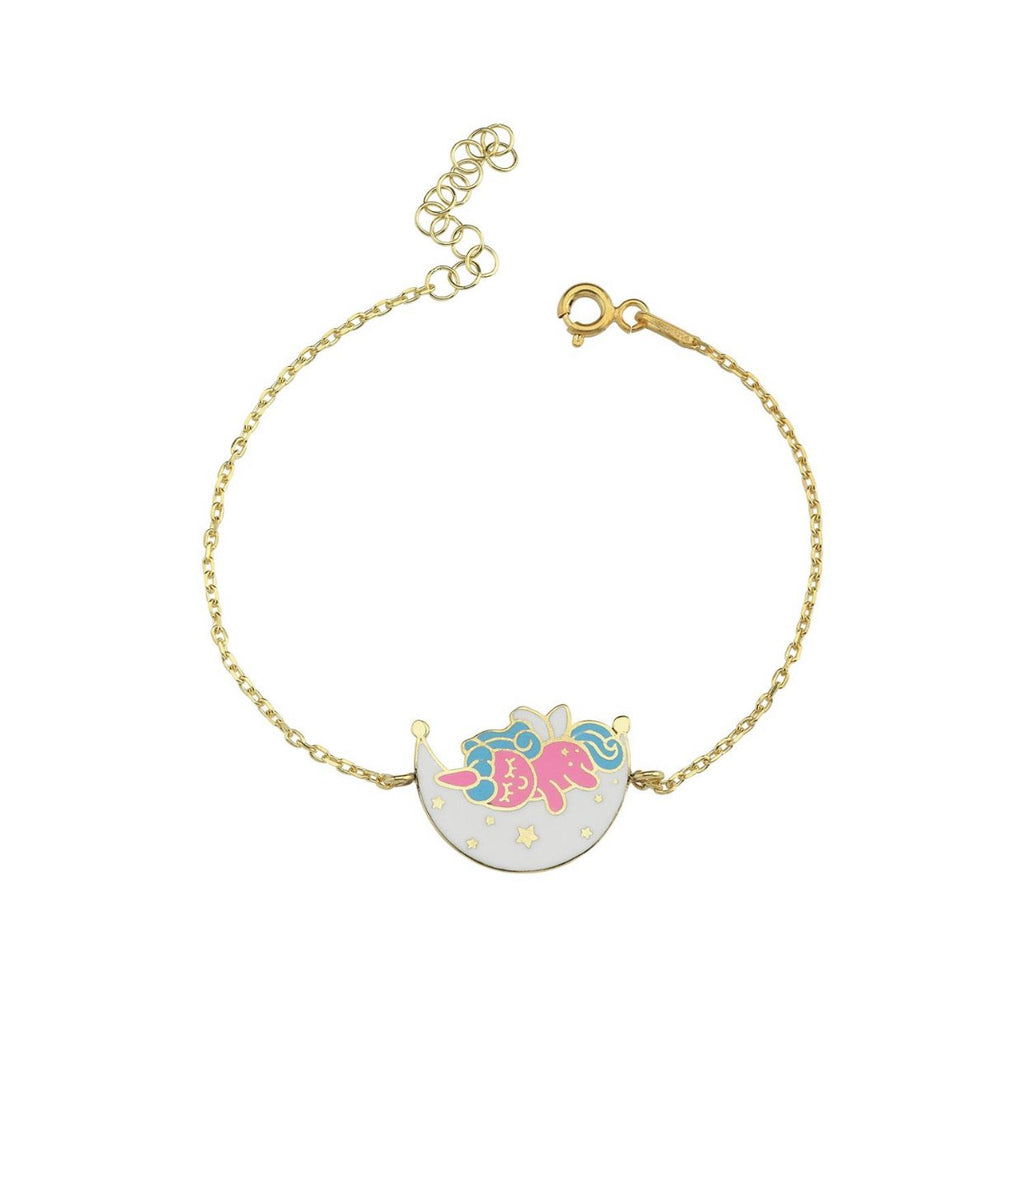 Children's Unicorn Bracelet JEWELRY The Sis Kiss